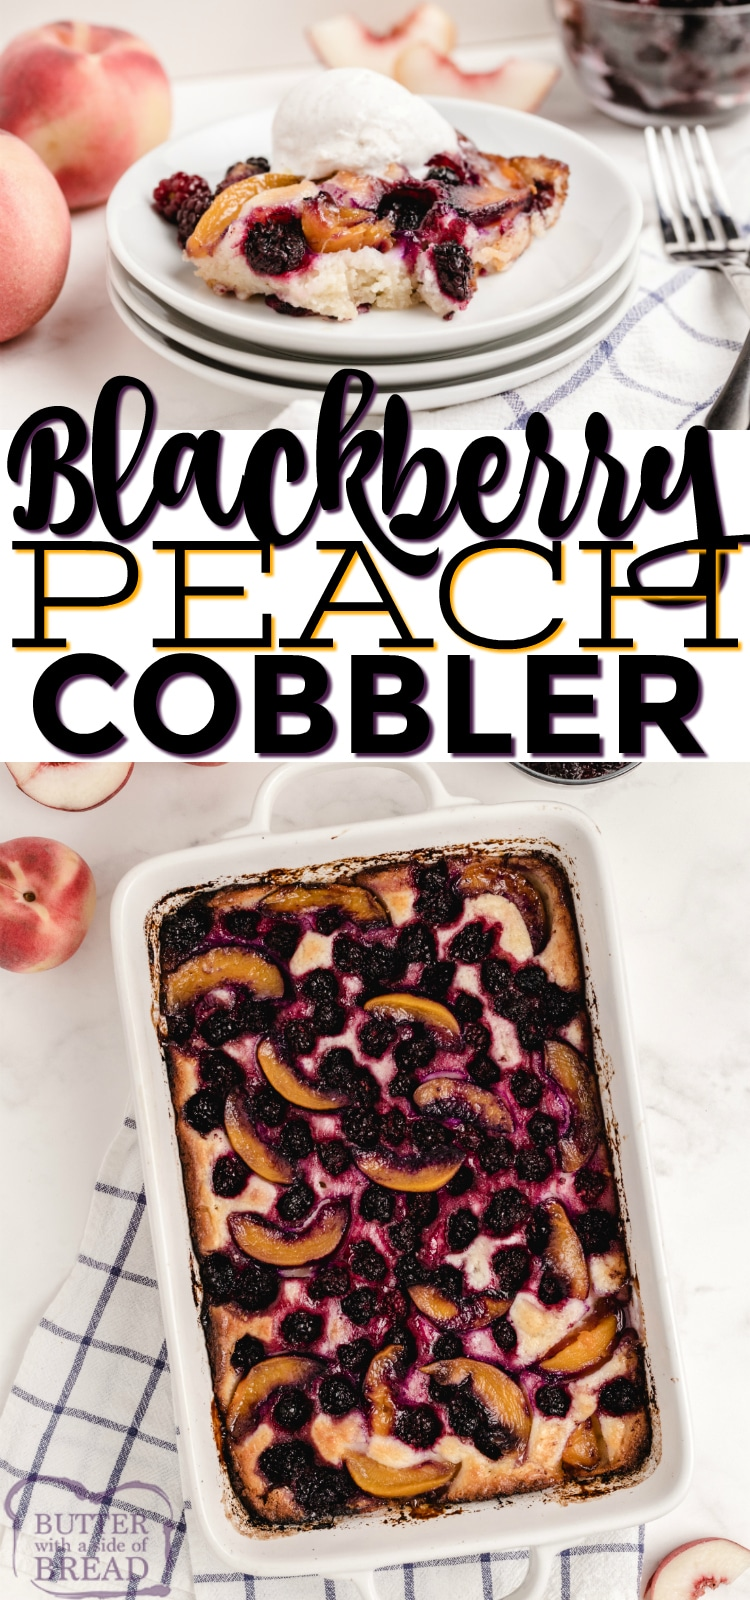 Blackberry Peach Cobbler is made with canned peaches, frozen blackberries and a few other simple ingredients. Delicious easy cobbler recipe!